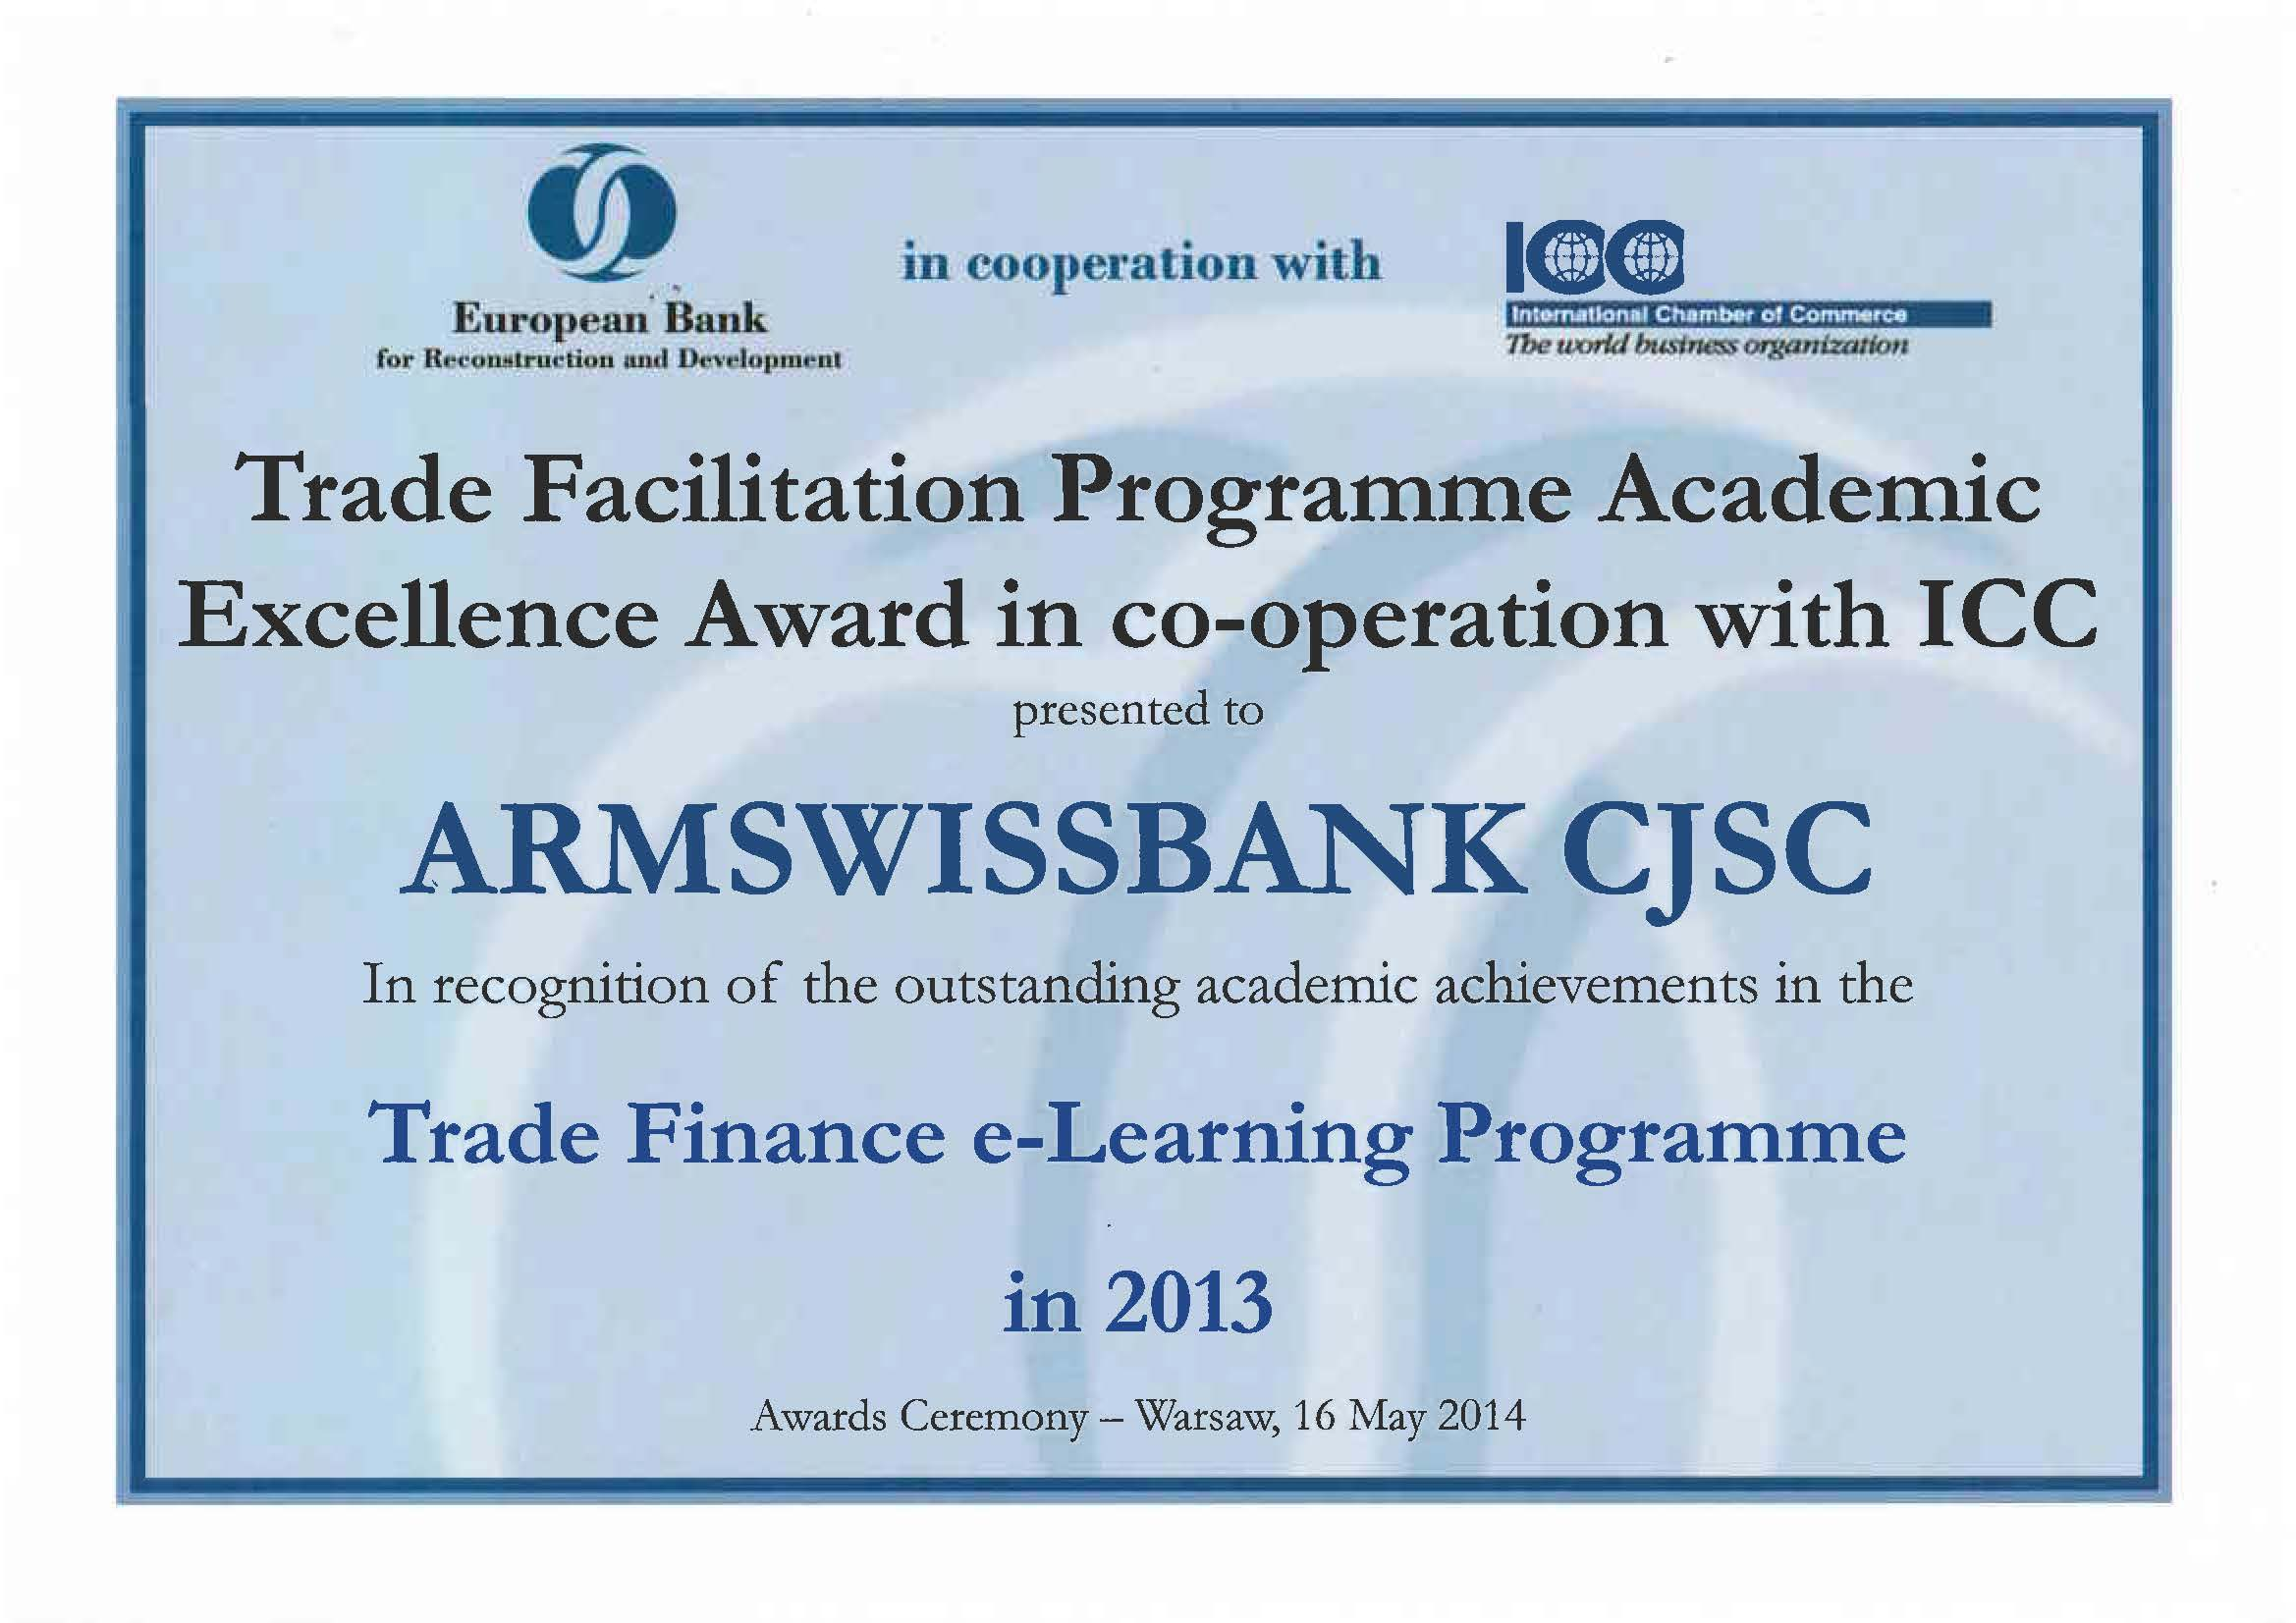 Armswissbank Was Awarded With The Certificate Of Trade Facilitation